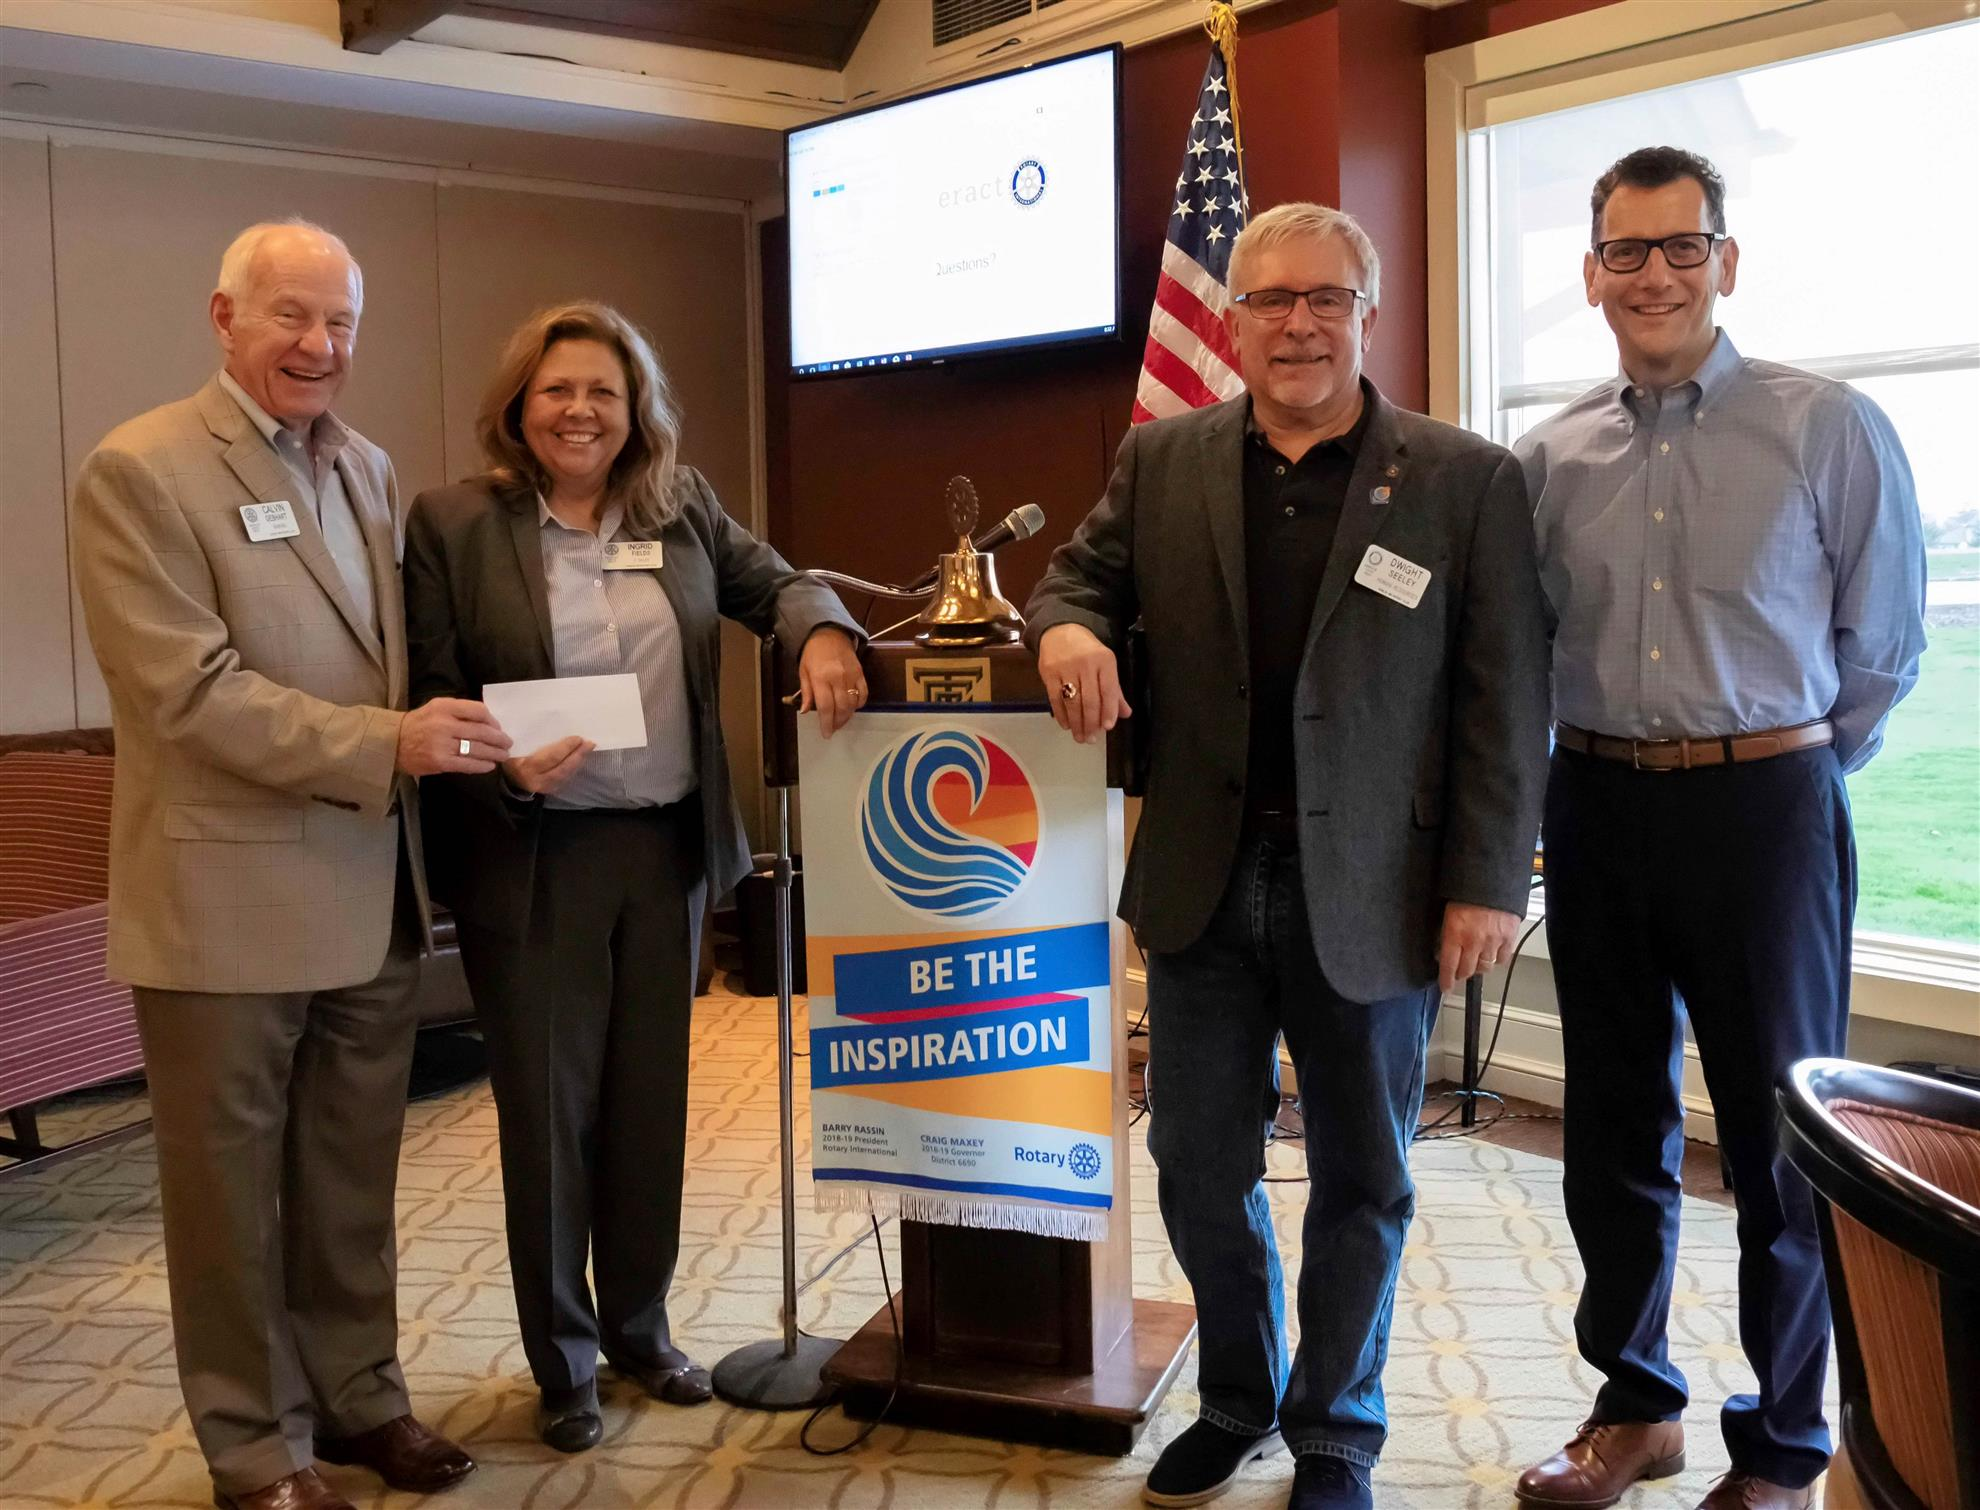 Stories | Rotary Club of Dublin AM